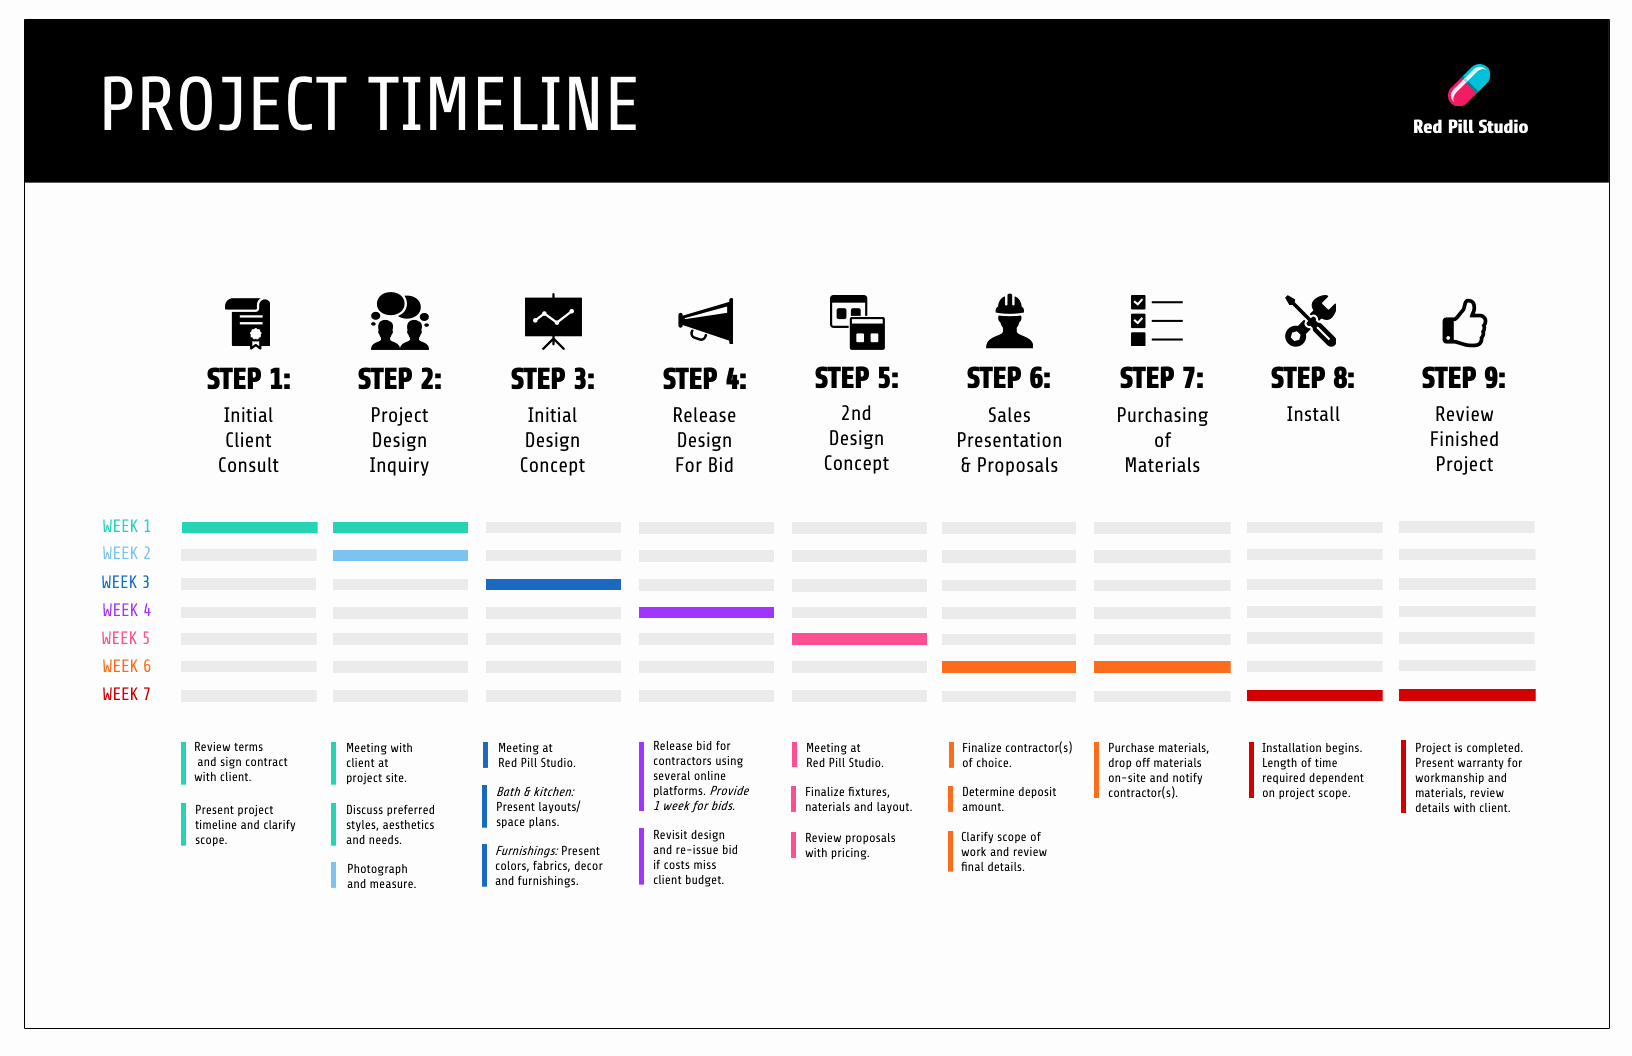 Project Timeline Template Word Best Of 15 Project Plan Templates to Visualize Your Strategy